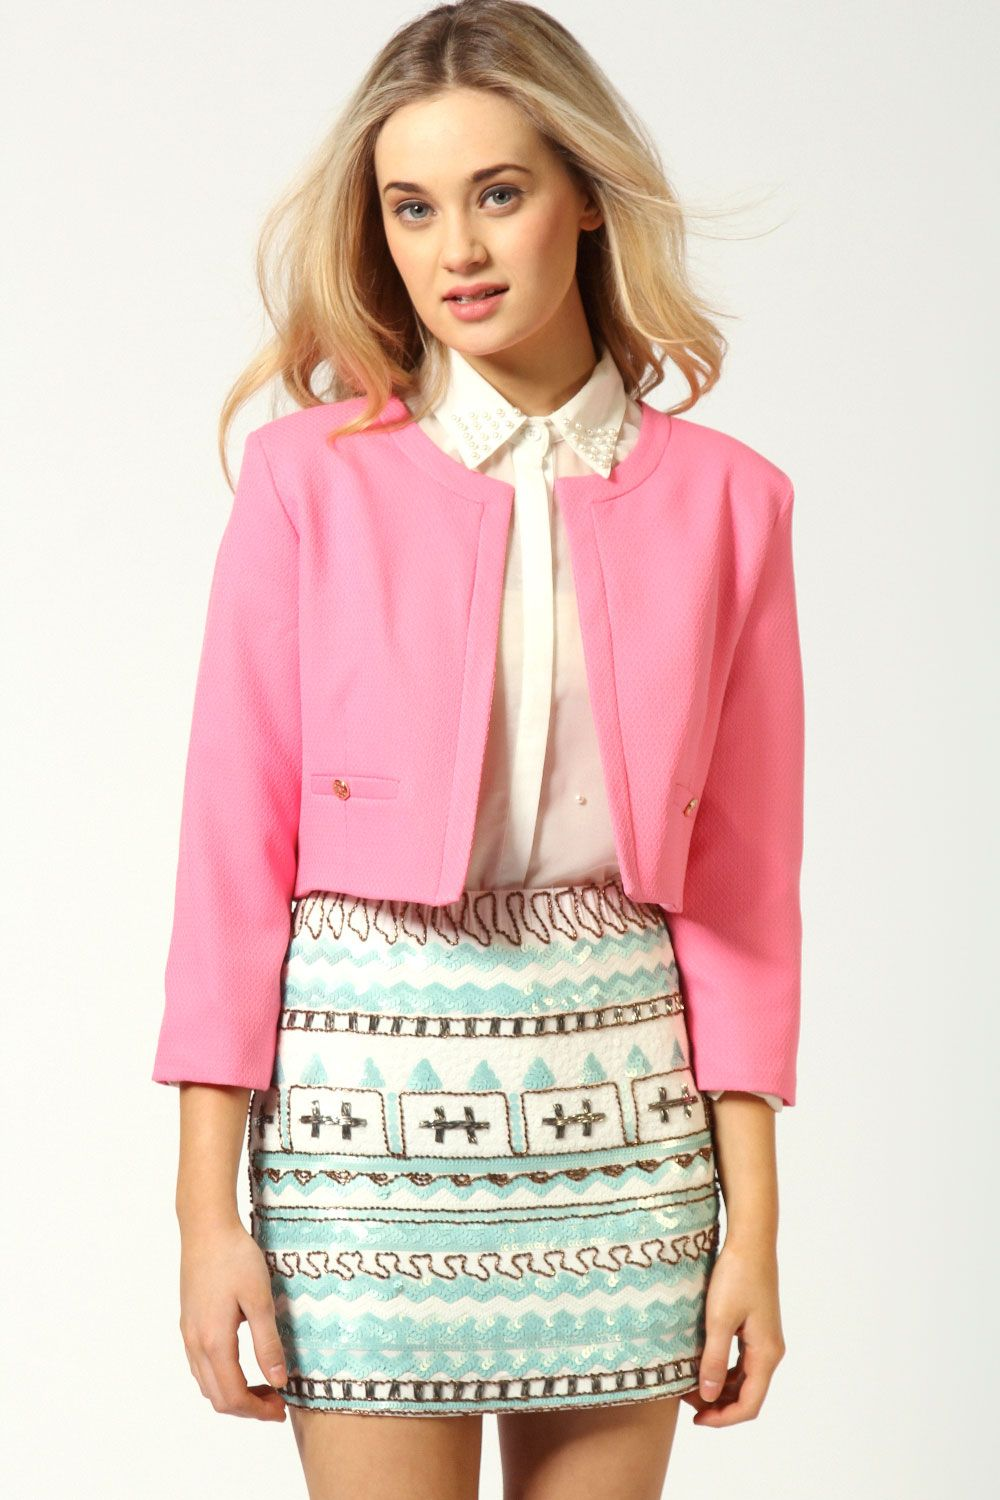 Work Jacket Or Wedding Garden Party Depends How Bright The Pink